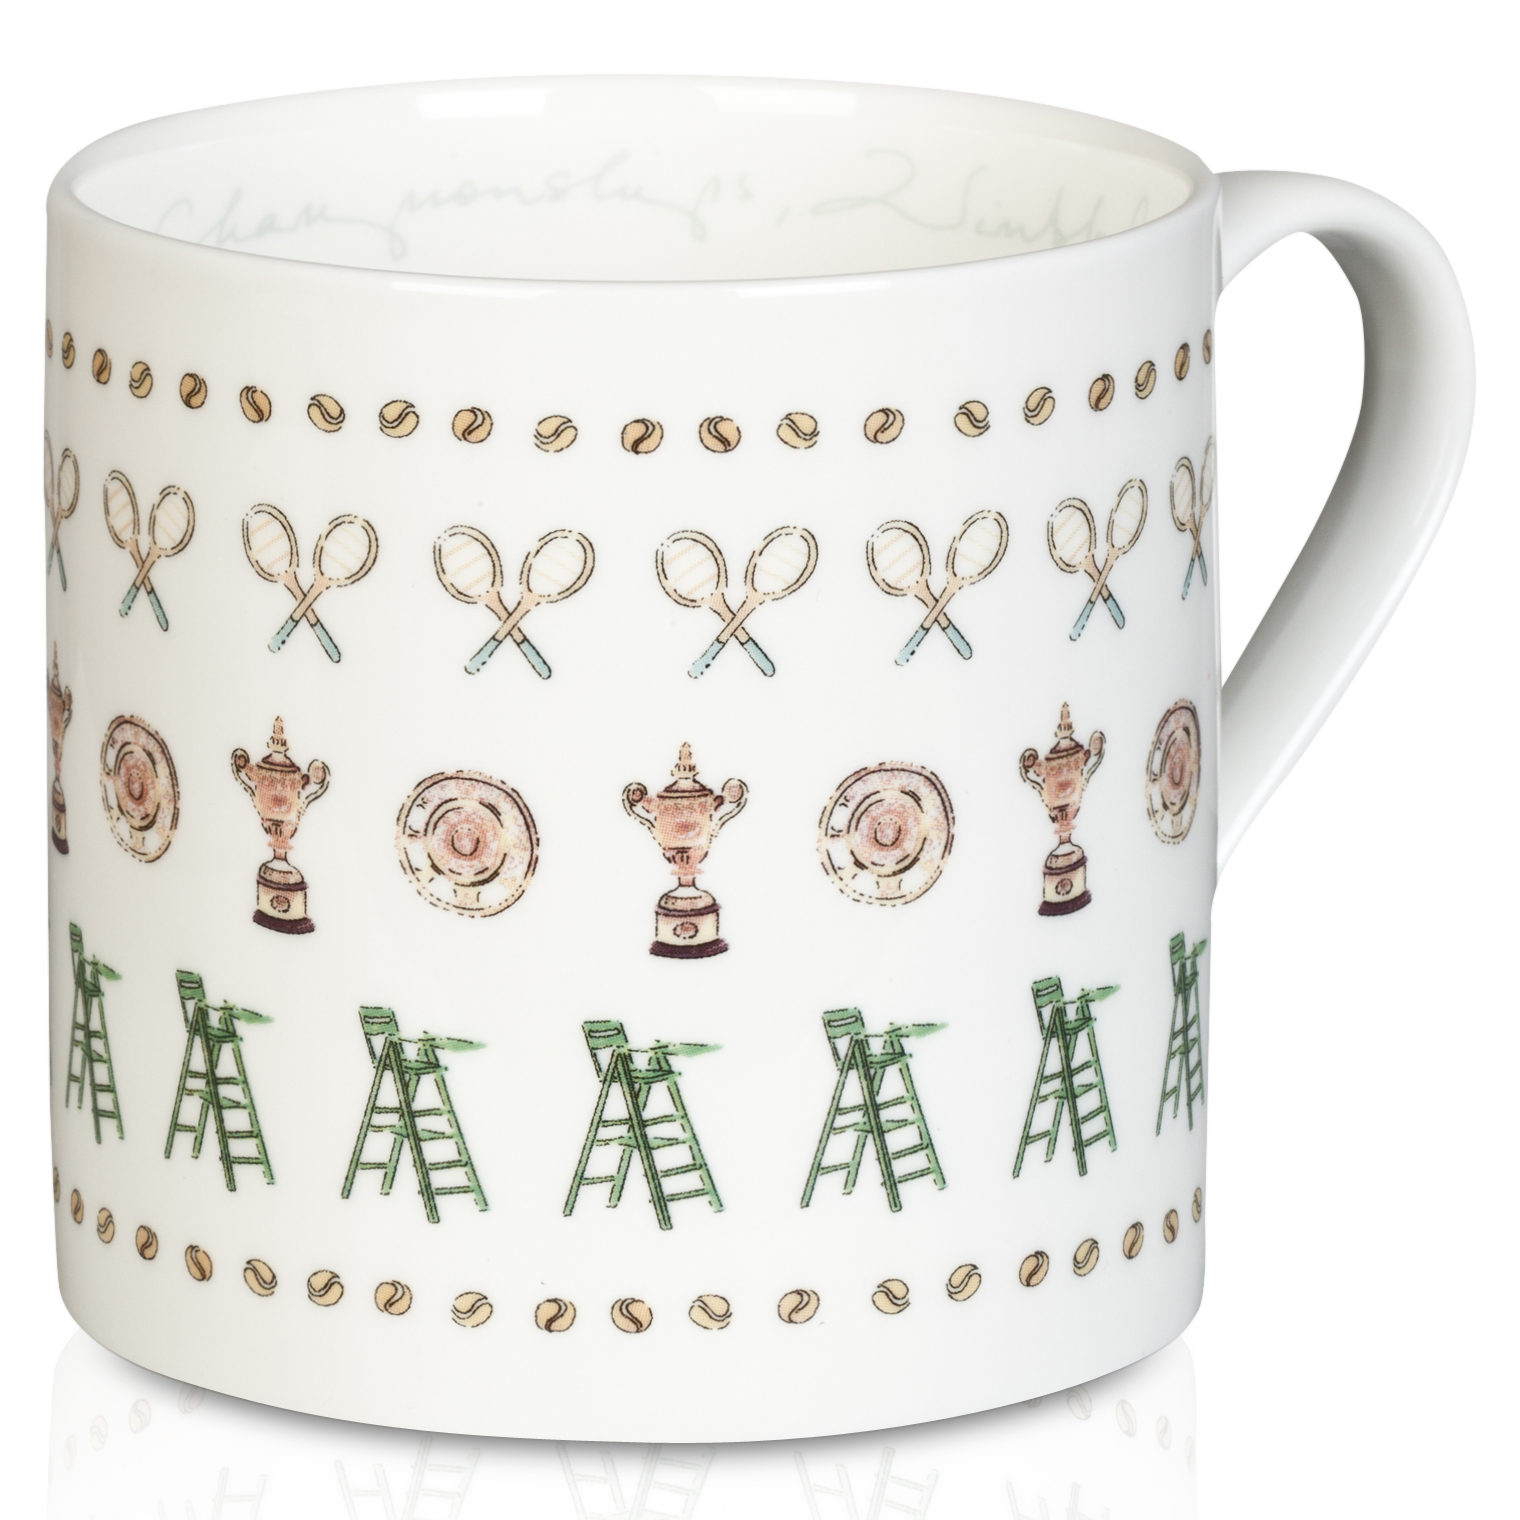 Wimbledon Mug With Umpire and Recket Design White